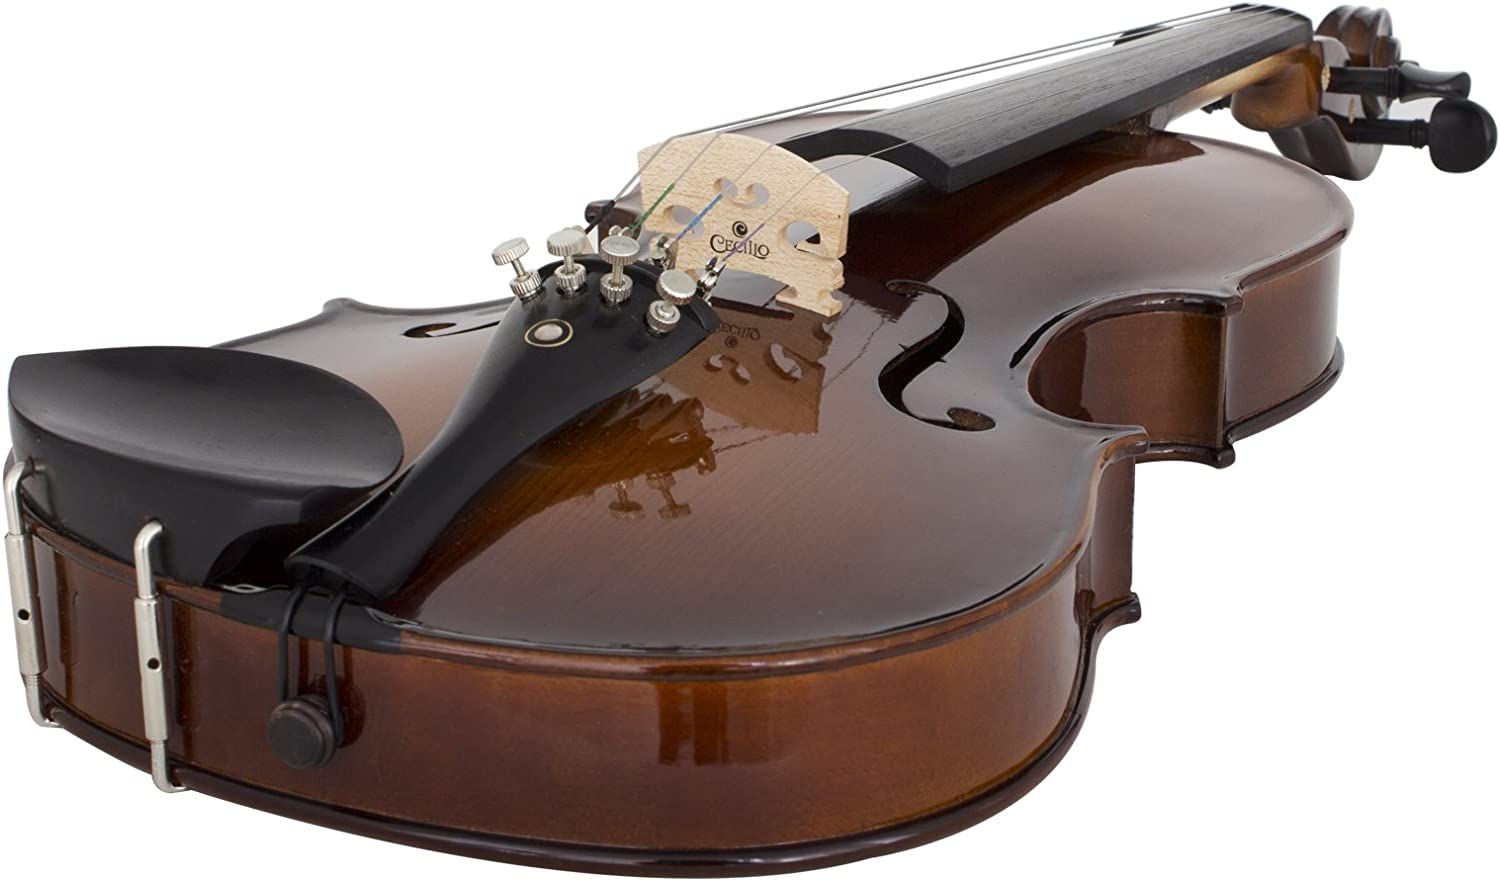 Antique Varnish Size 1//4 Cecilio CVN-EAV Ebony Fitted Solid Wood Violin with Deluxe Oblong Case